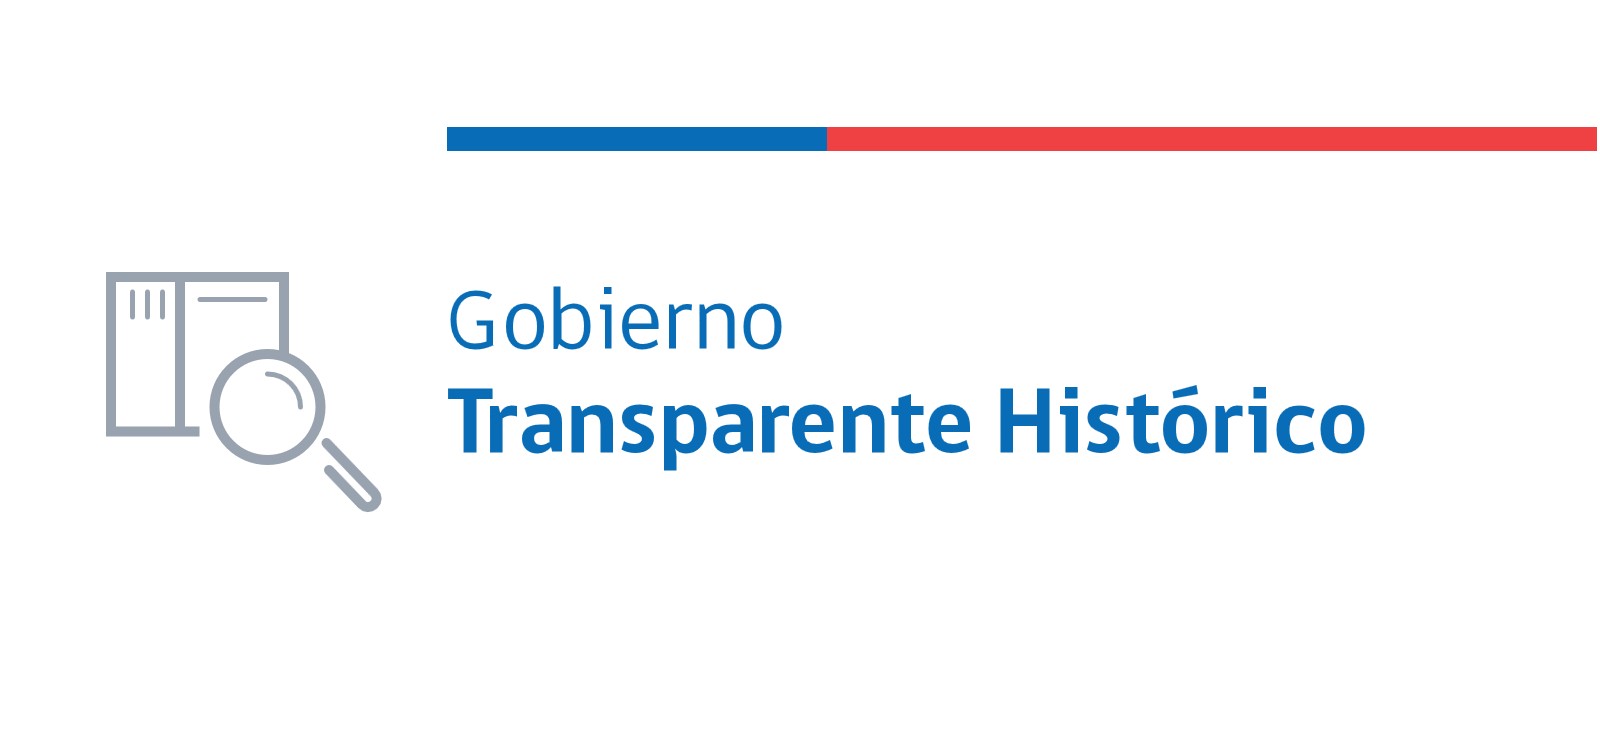 Gob transparente